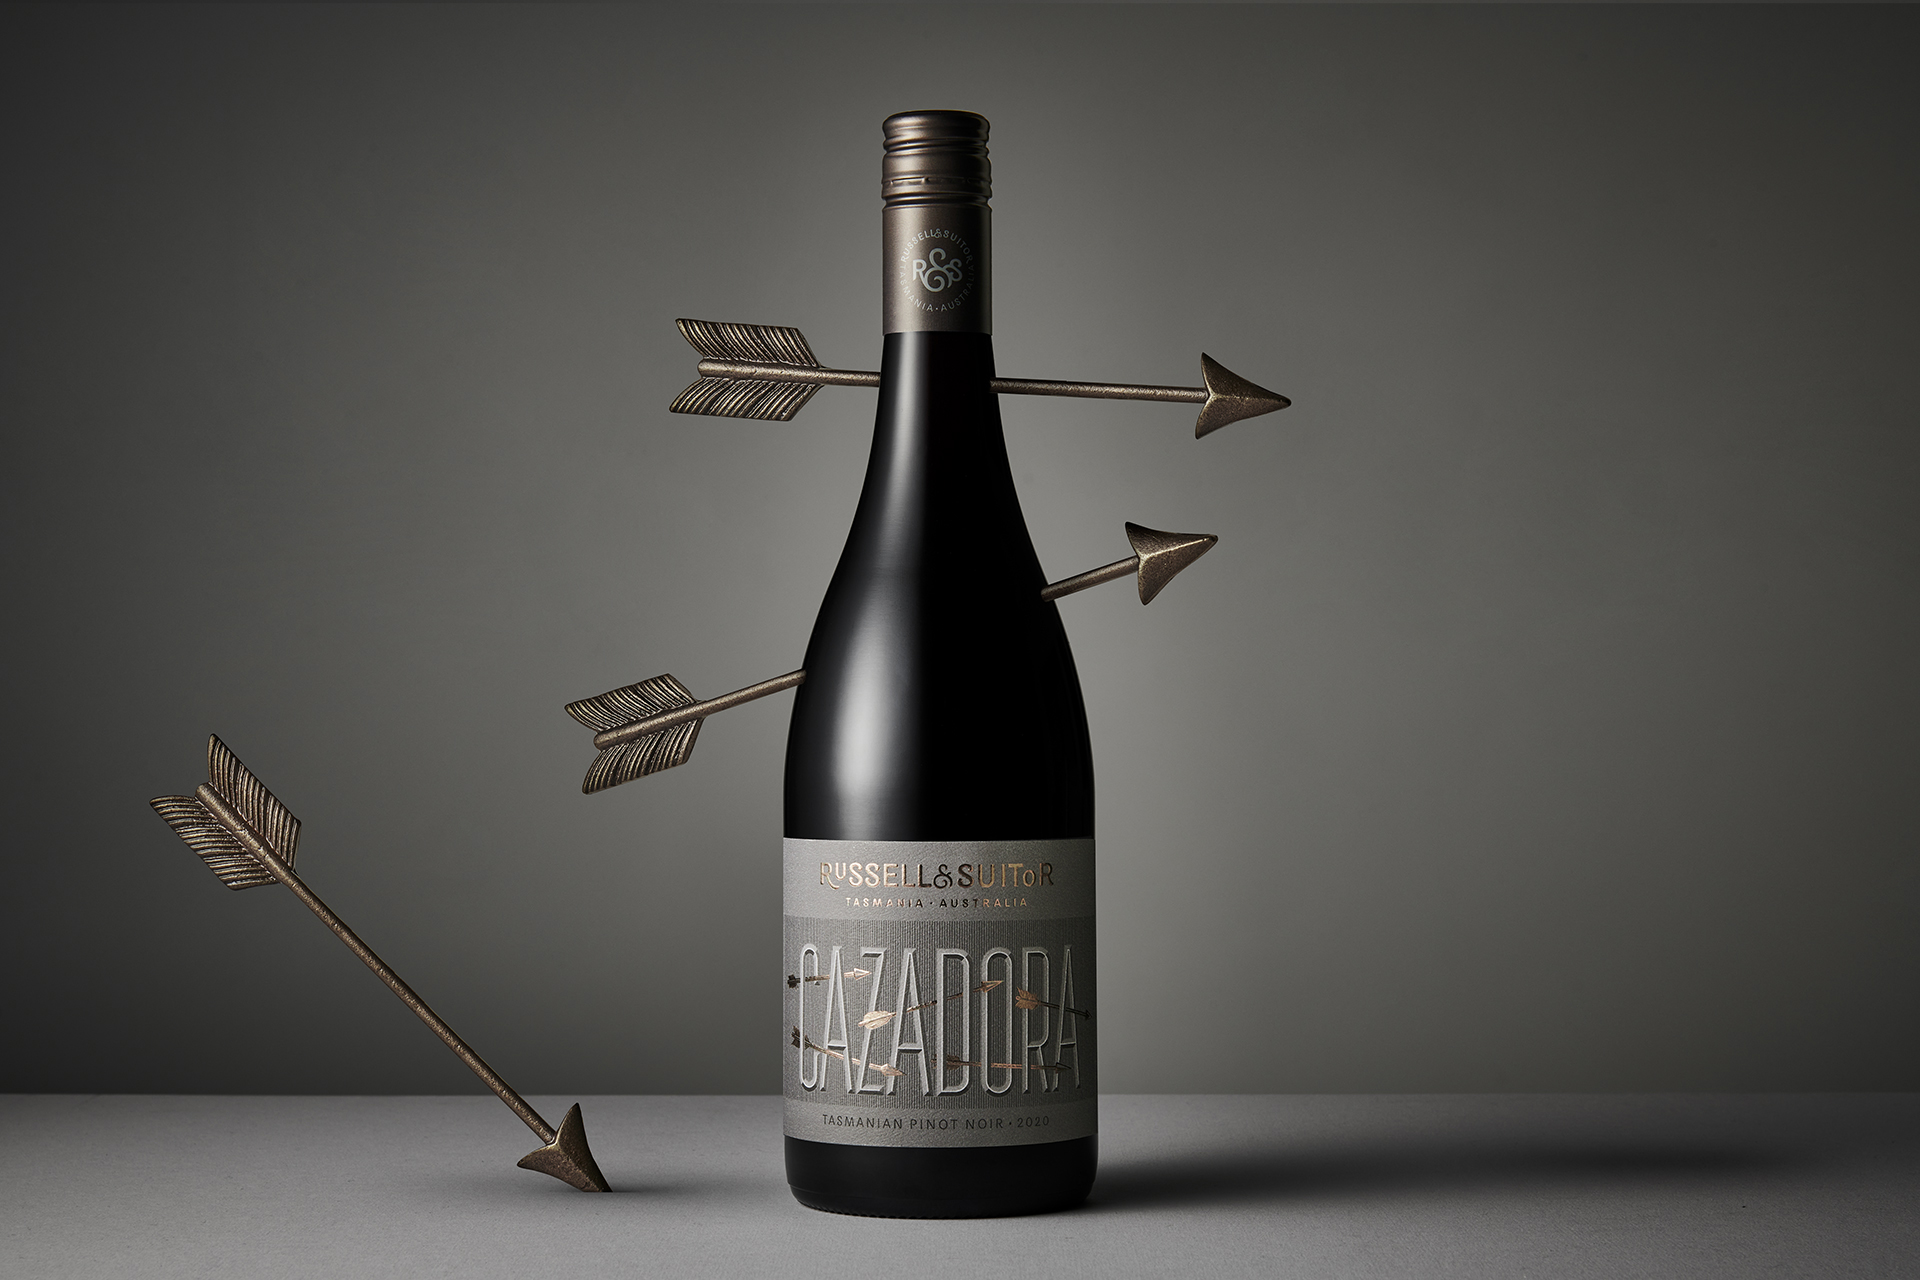 Packaging Design for Russell & Suitor Cazadora Wines by Harcus Design